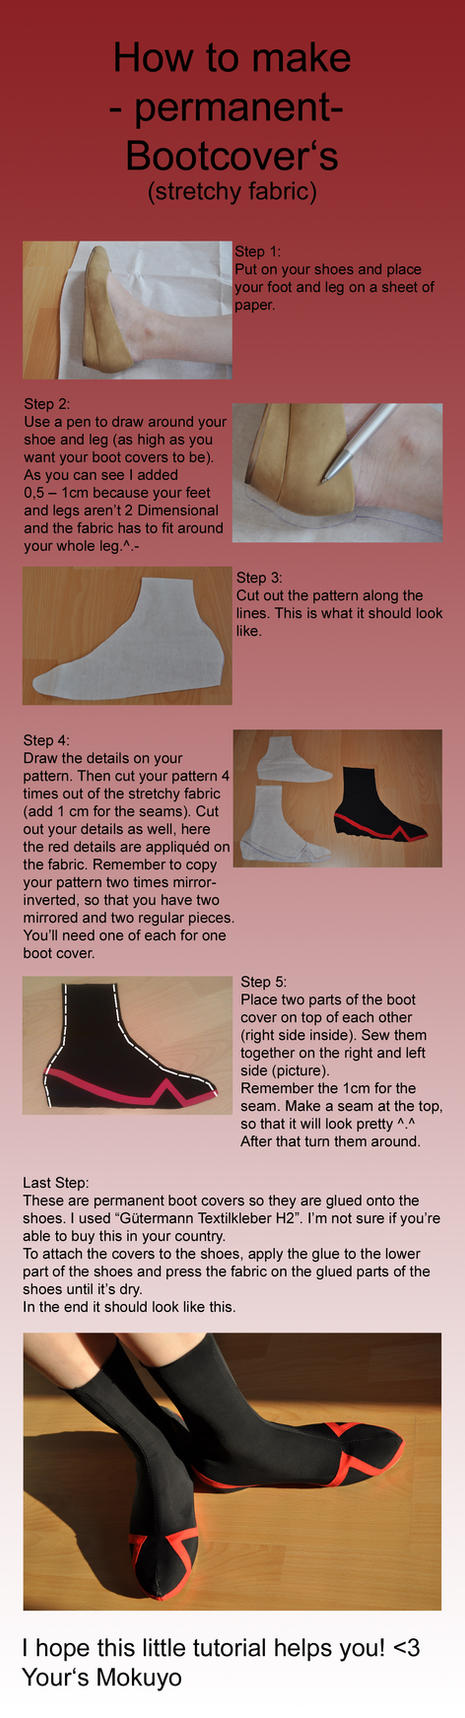 How to make Bootcovers Part 1 of 2 - permanent by Mokuyo